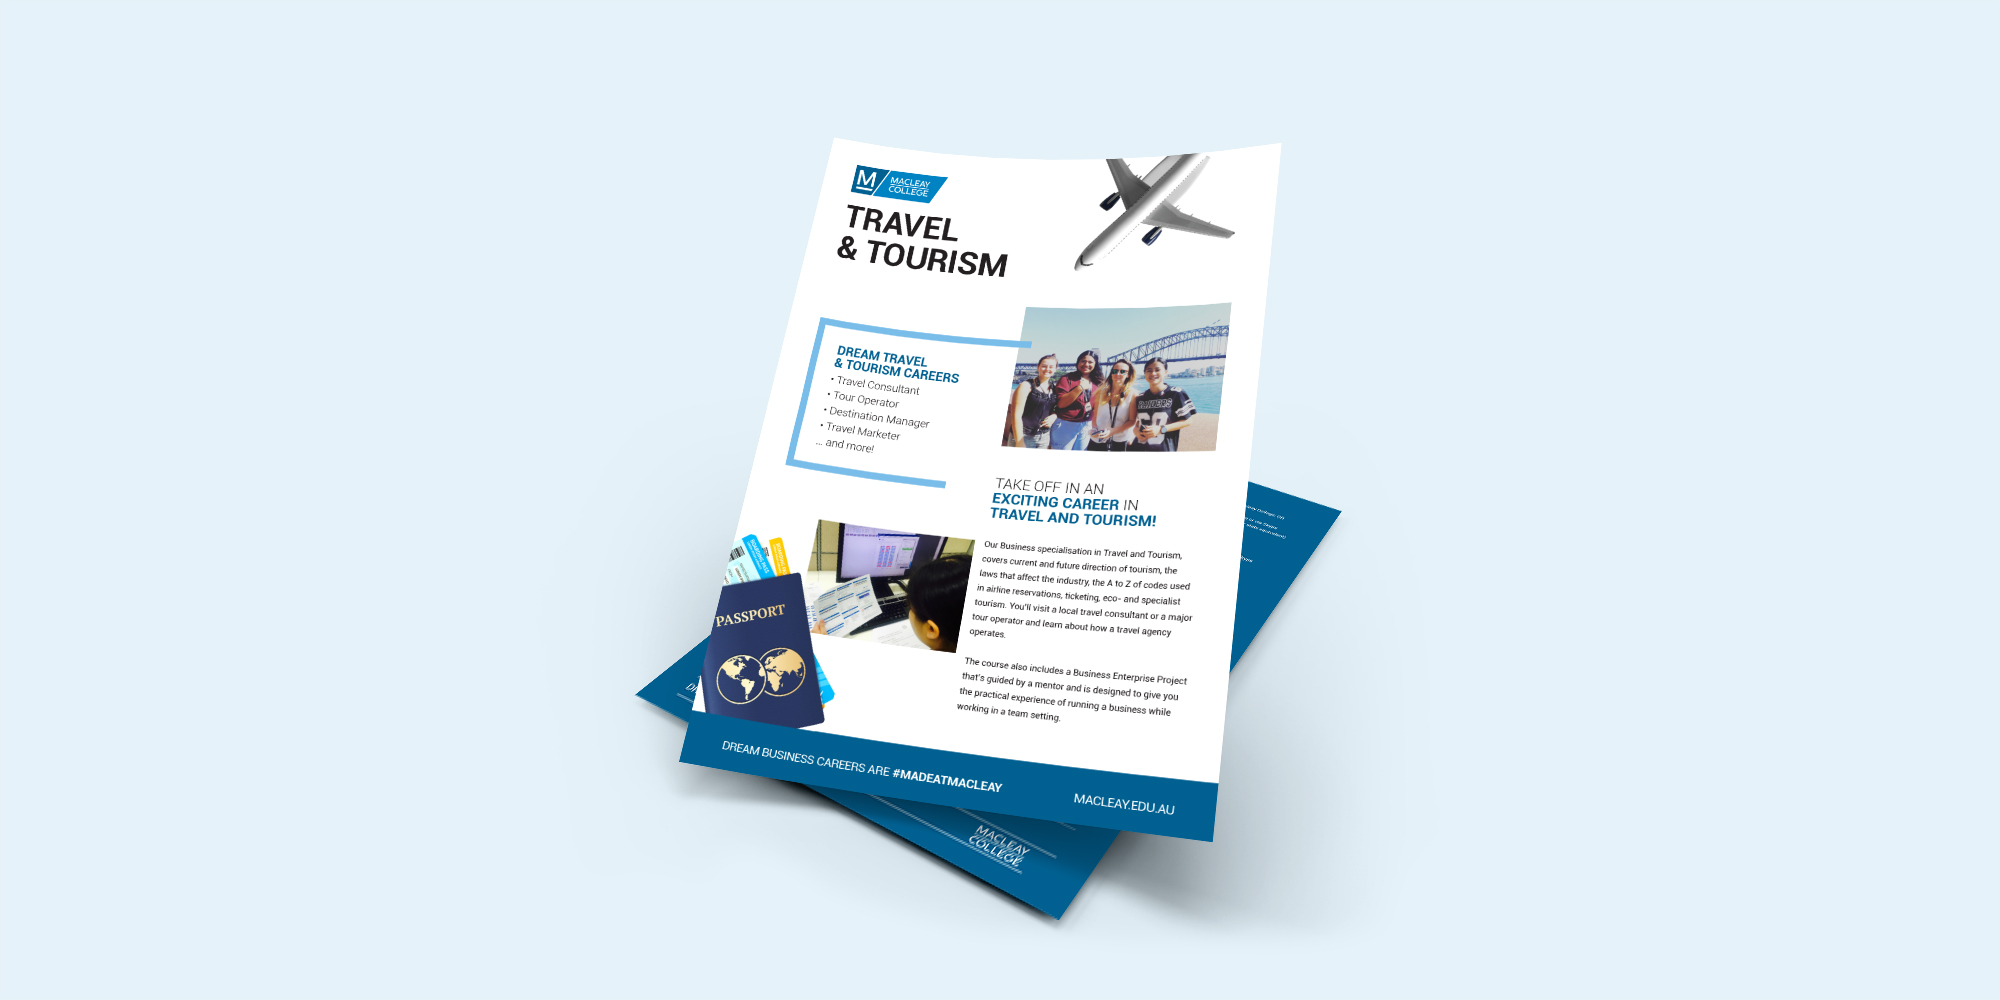 Macleay College Course Flyers - Ninth Street East Creative